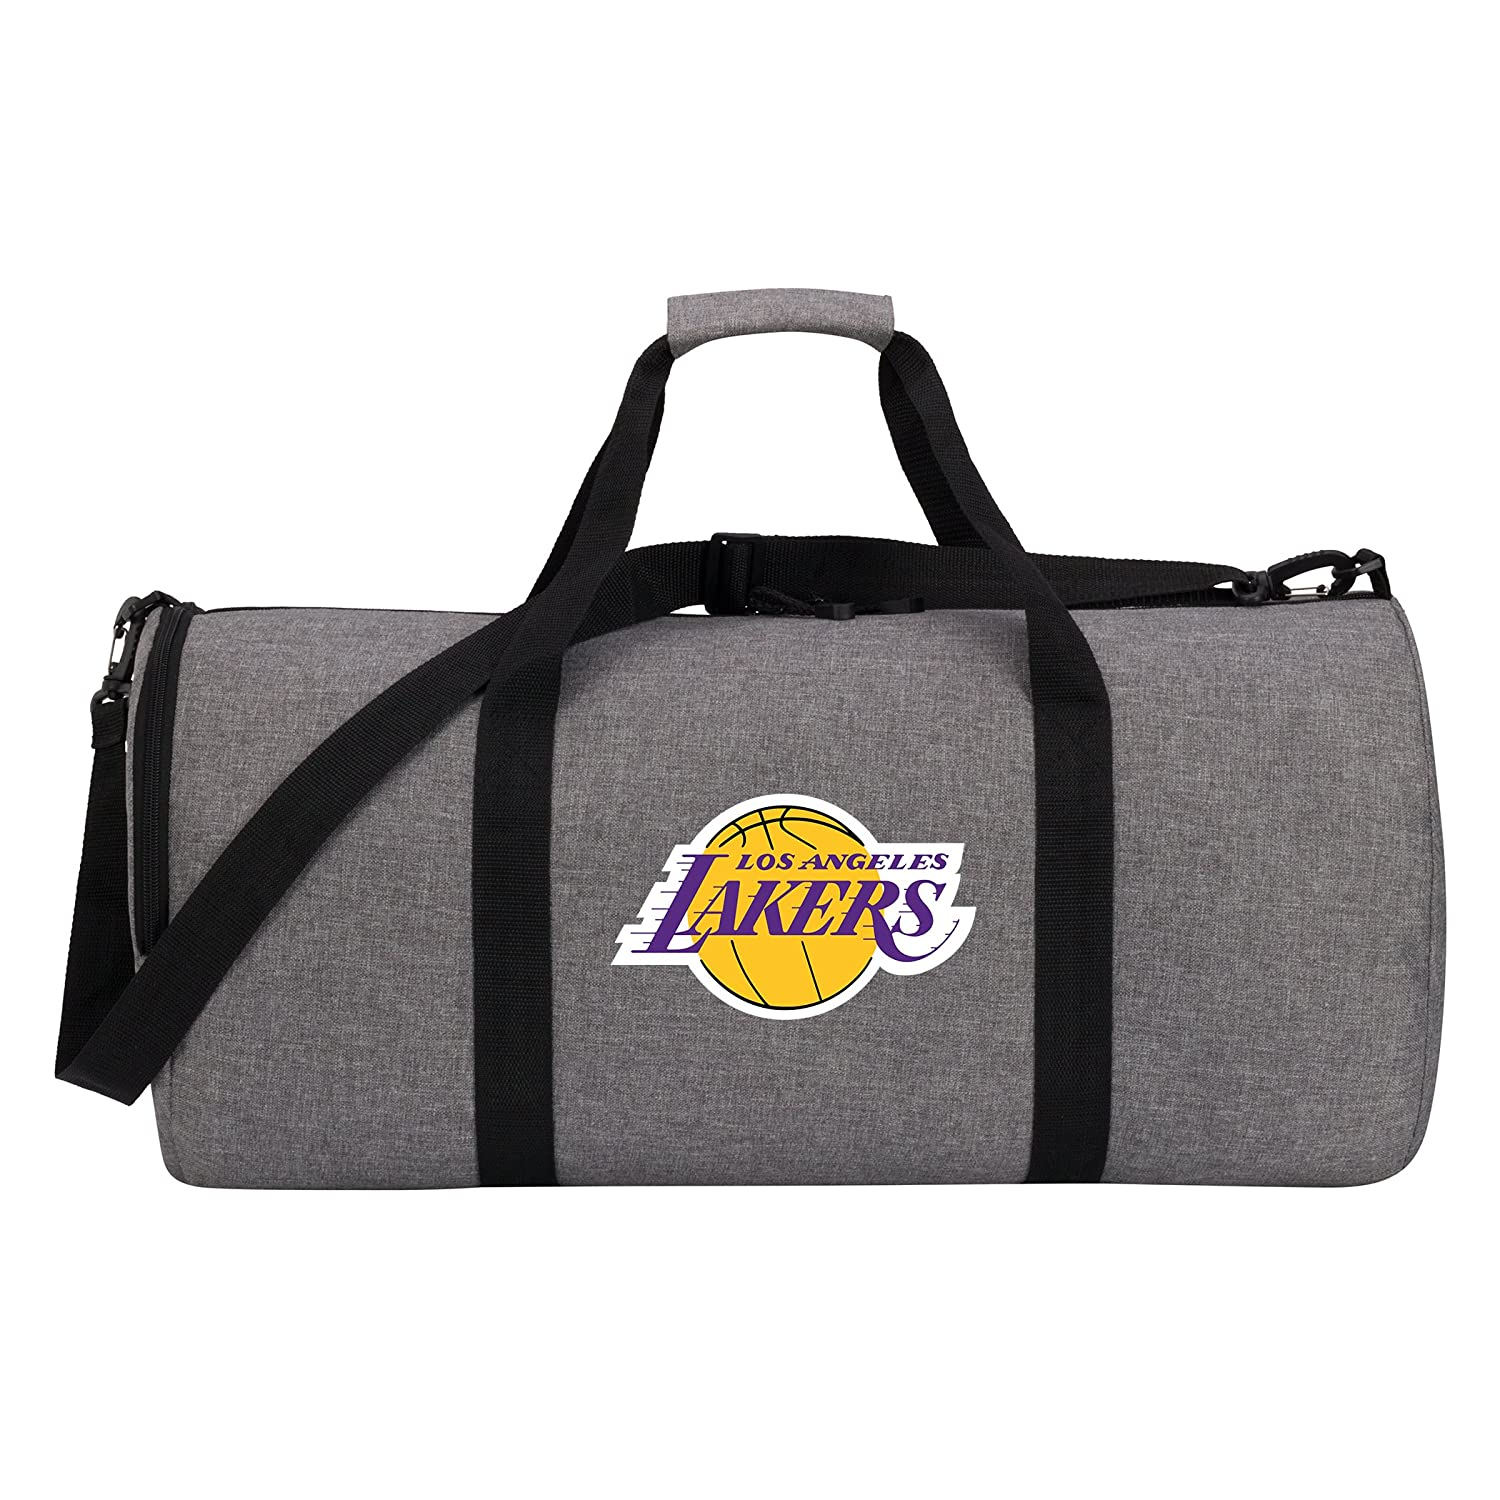 Officially Licensed NBA Wingman Duffle Bag Gray 24 x 12 x 12